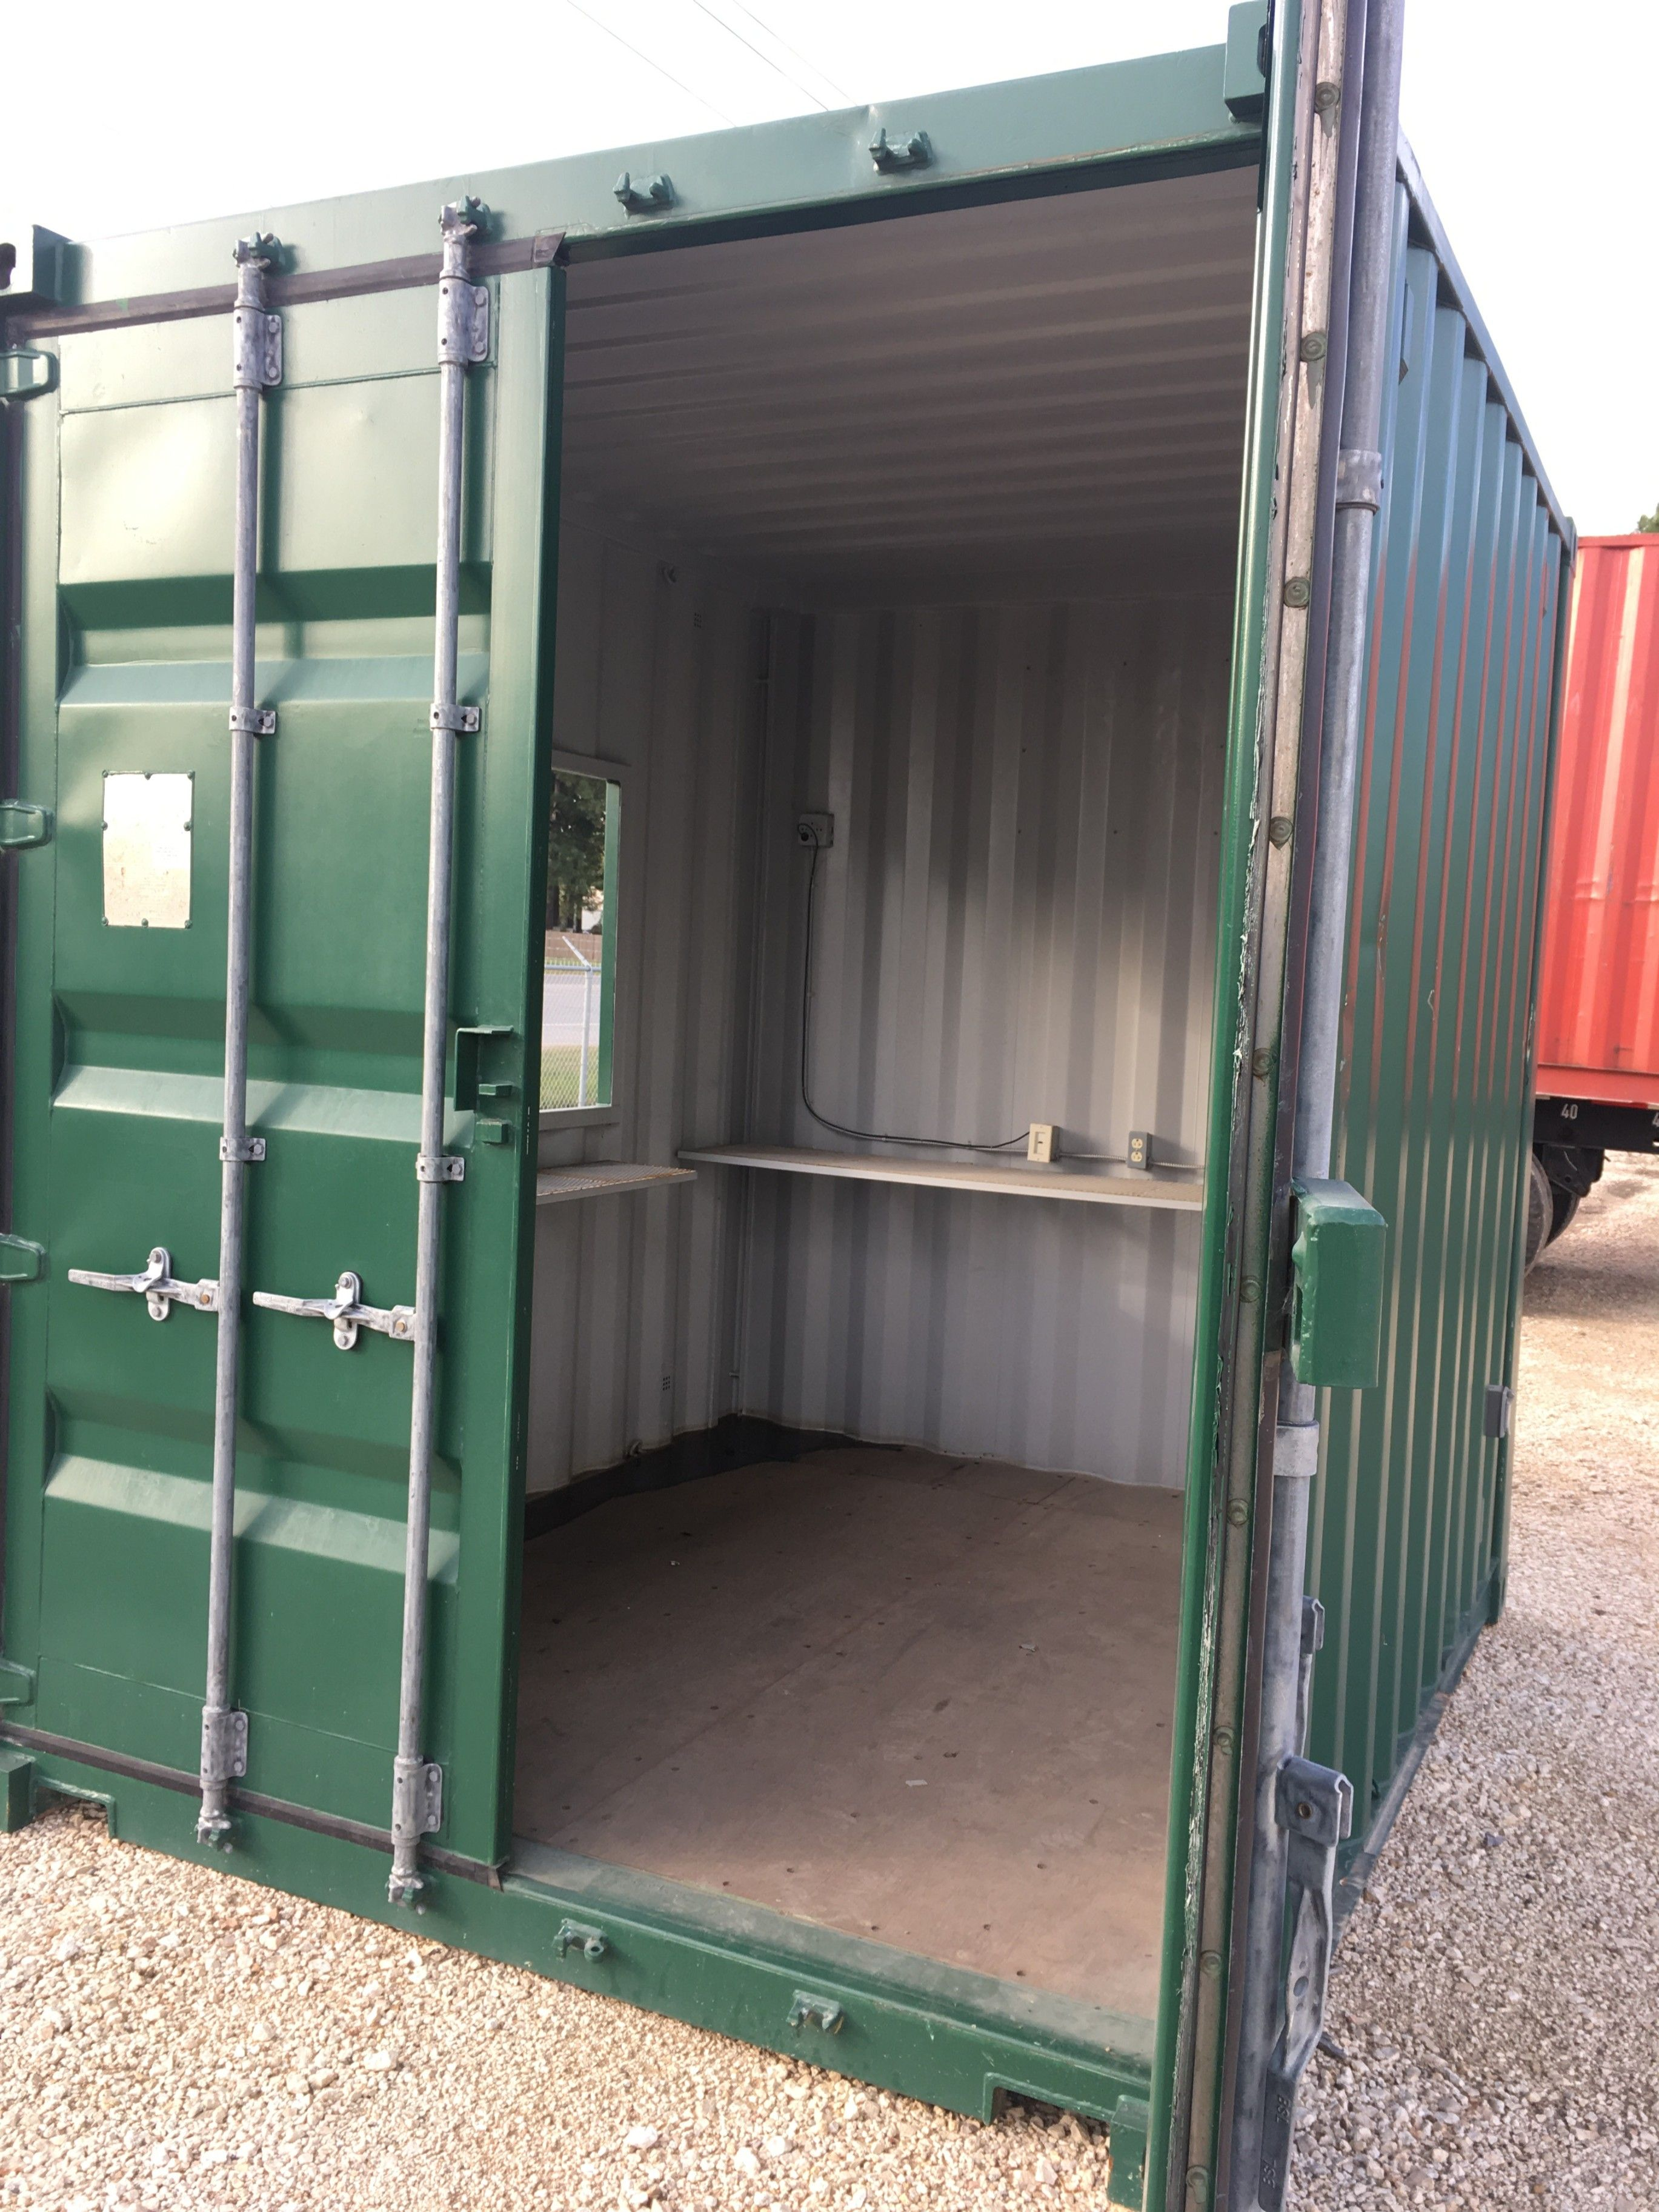 Ems shipping container bar to rentin houston area or